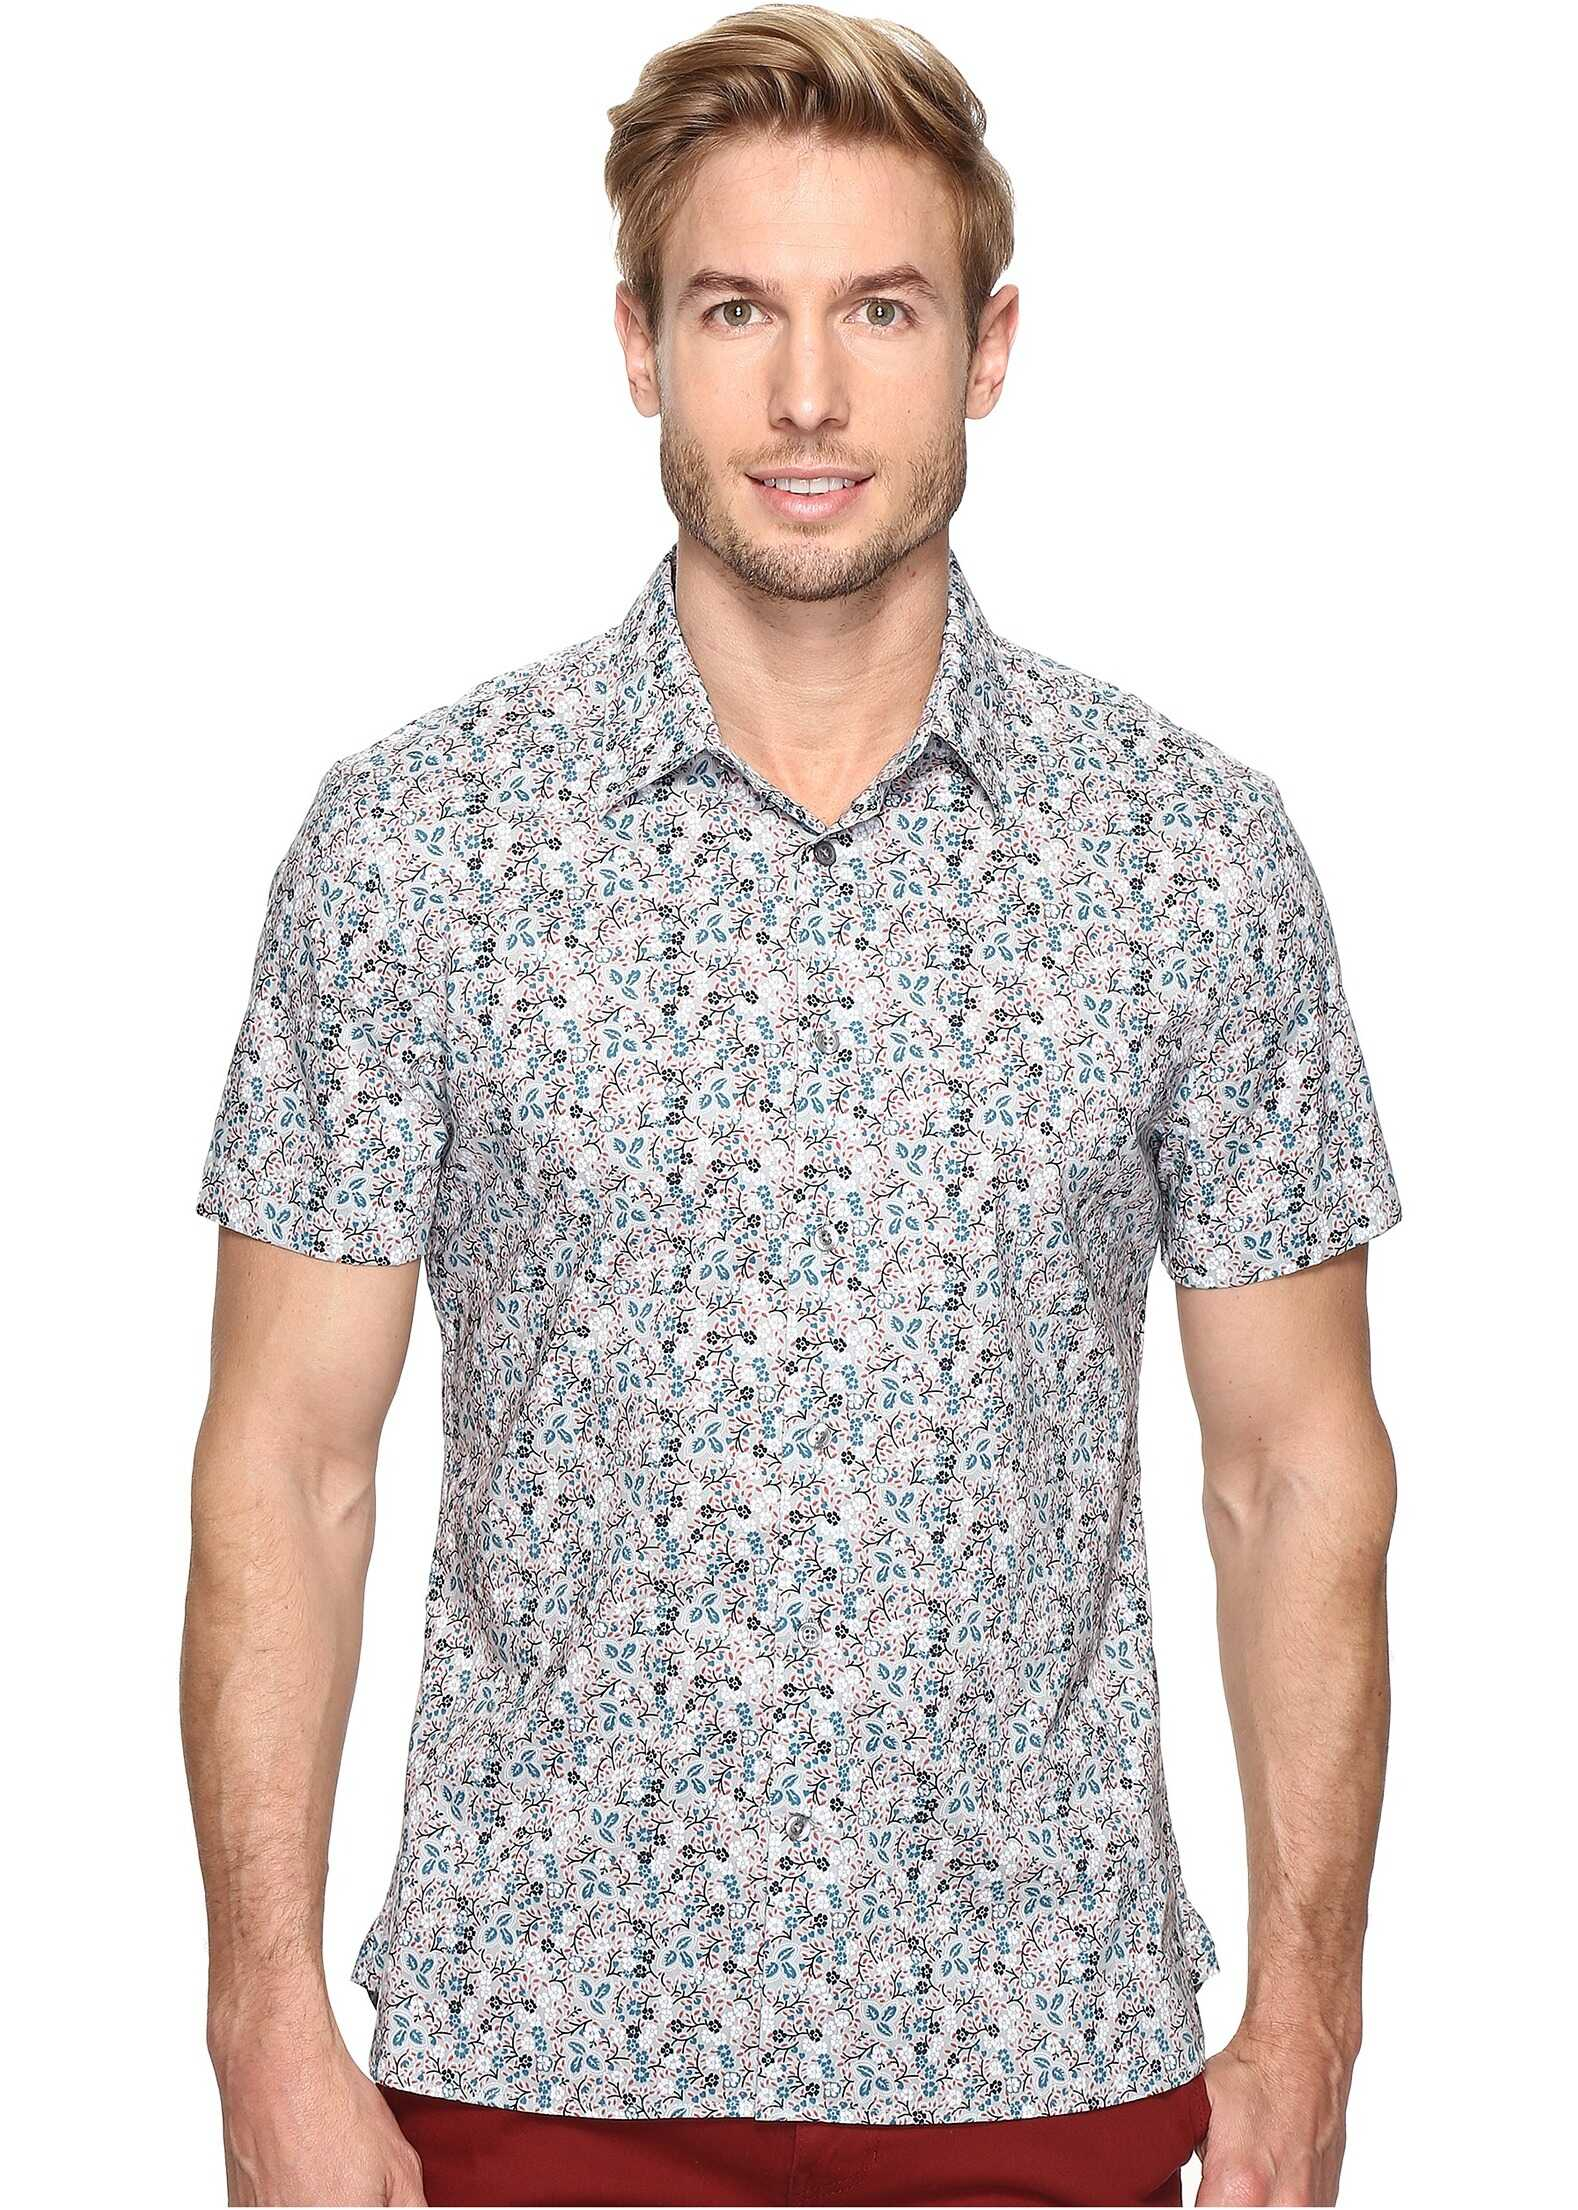 Perry Ellis Floral Printed Shirt* Quarry